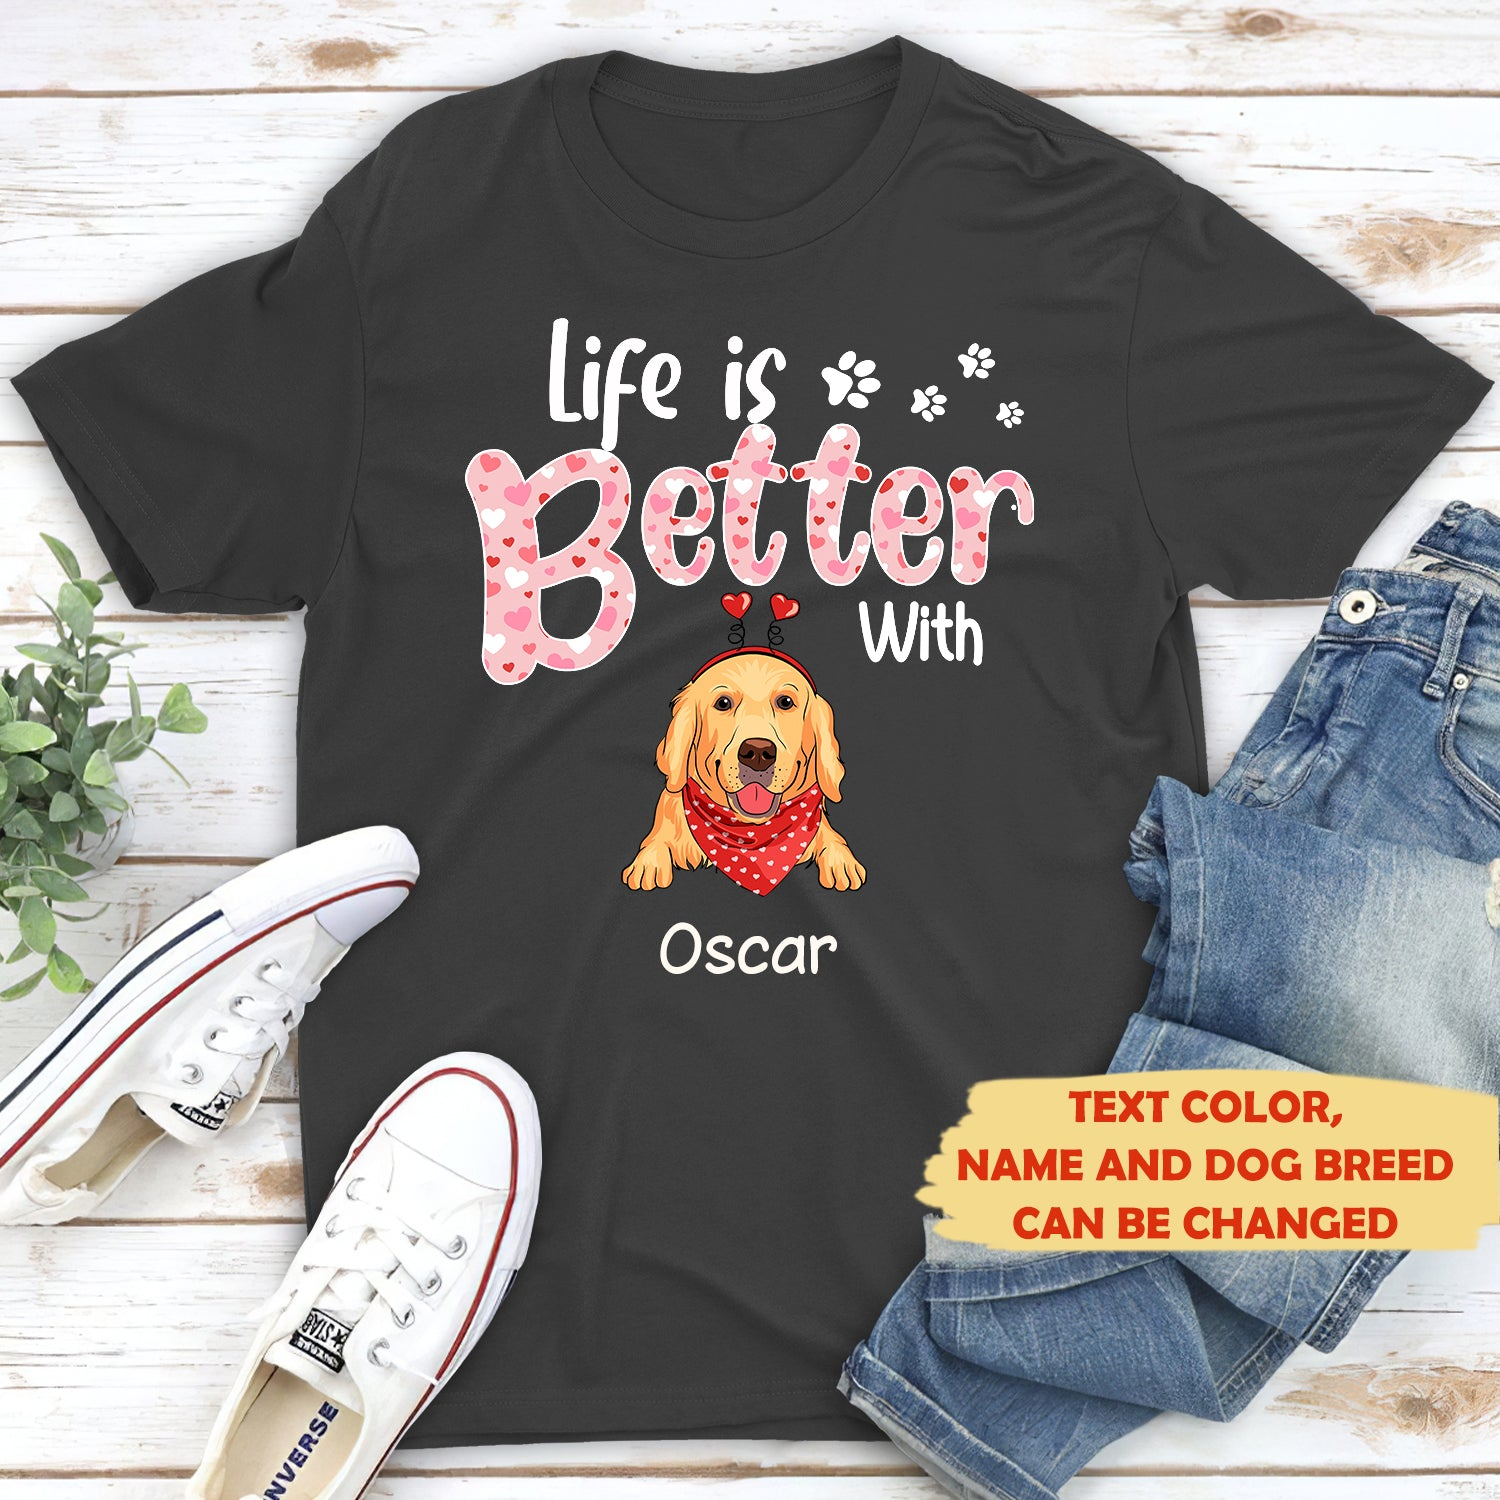 Life is better 2 - Personalized custom T-shirt